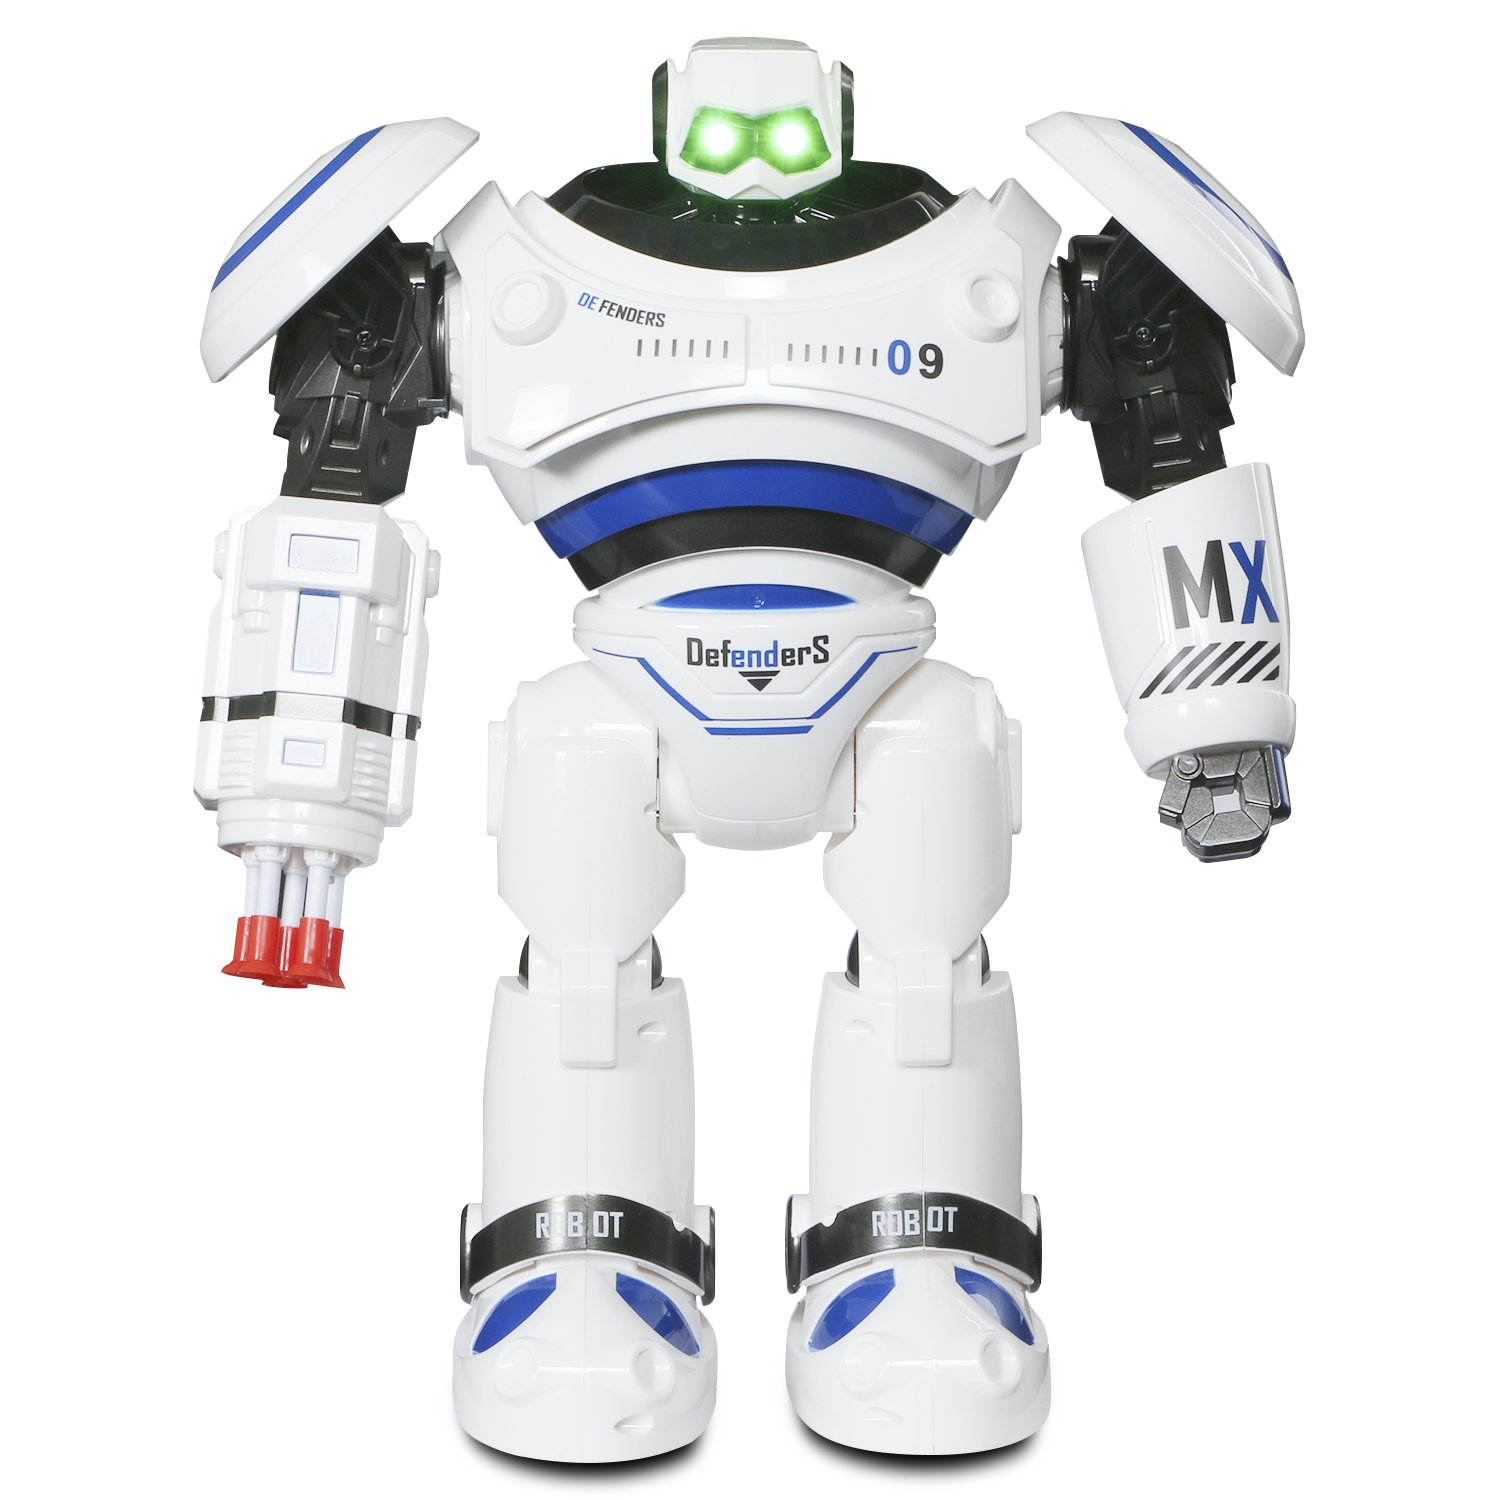 SGILE Remote Control RC Robot Toys for Christmas Gifts